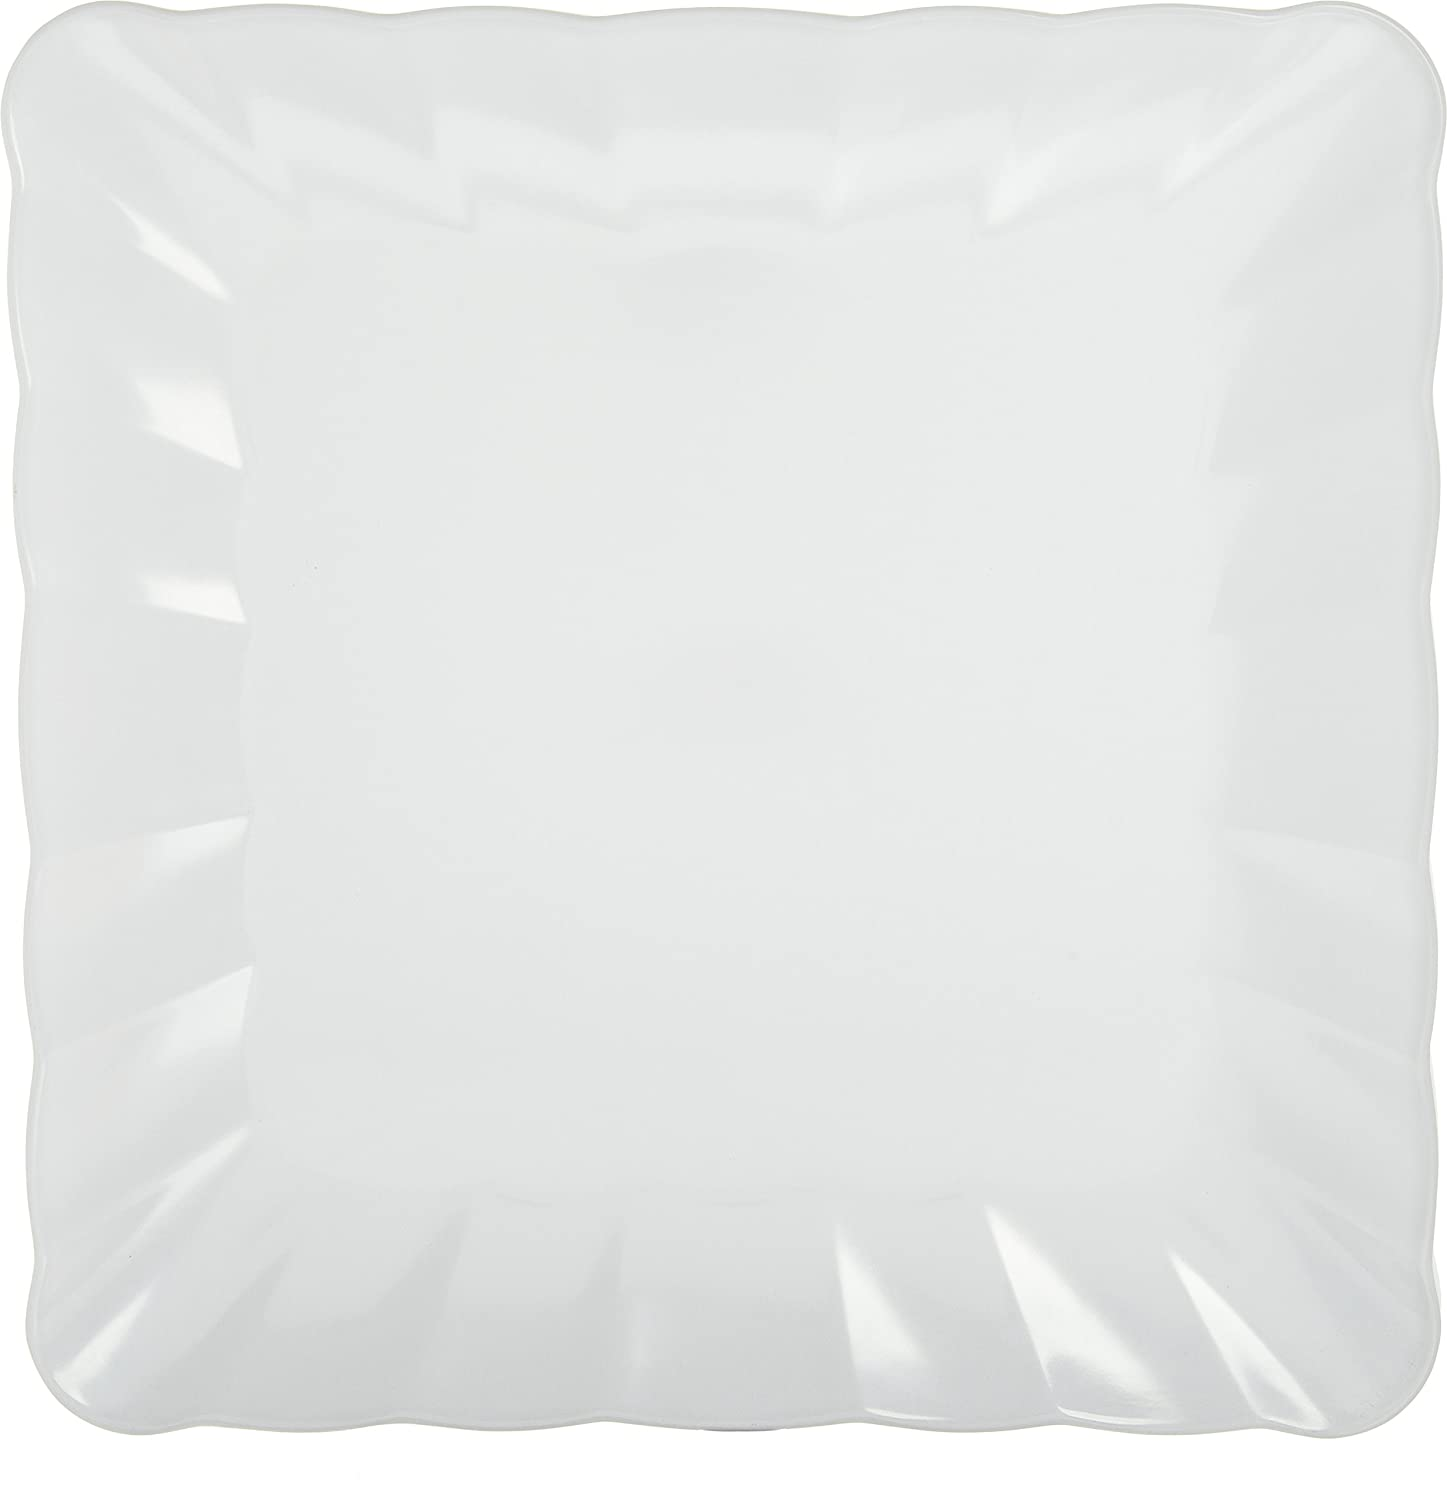 Clear 3.75 x 6.25 Cybrtrayd Mdk25G-I022 Durable And Reusable Candy Making Mold